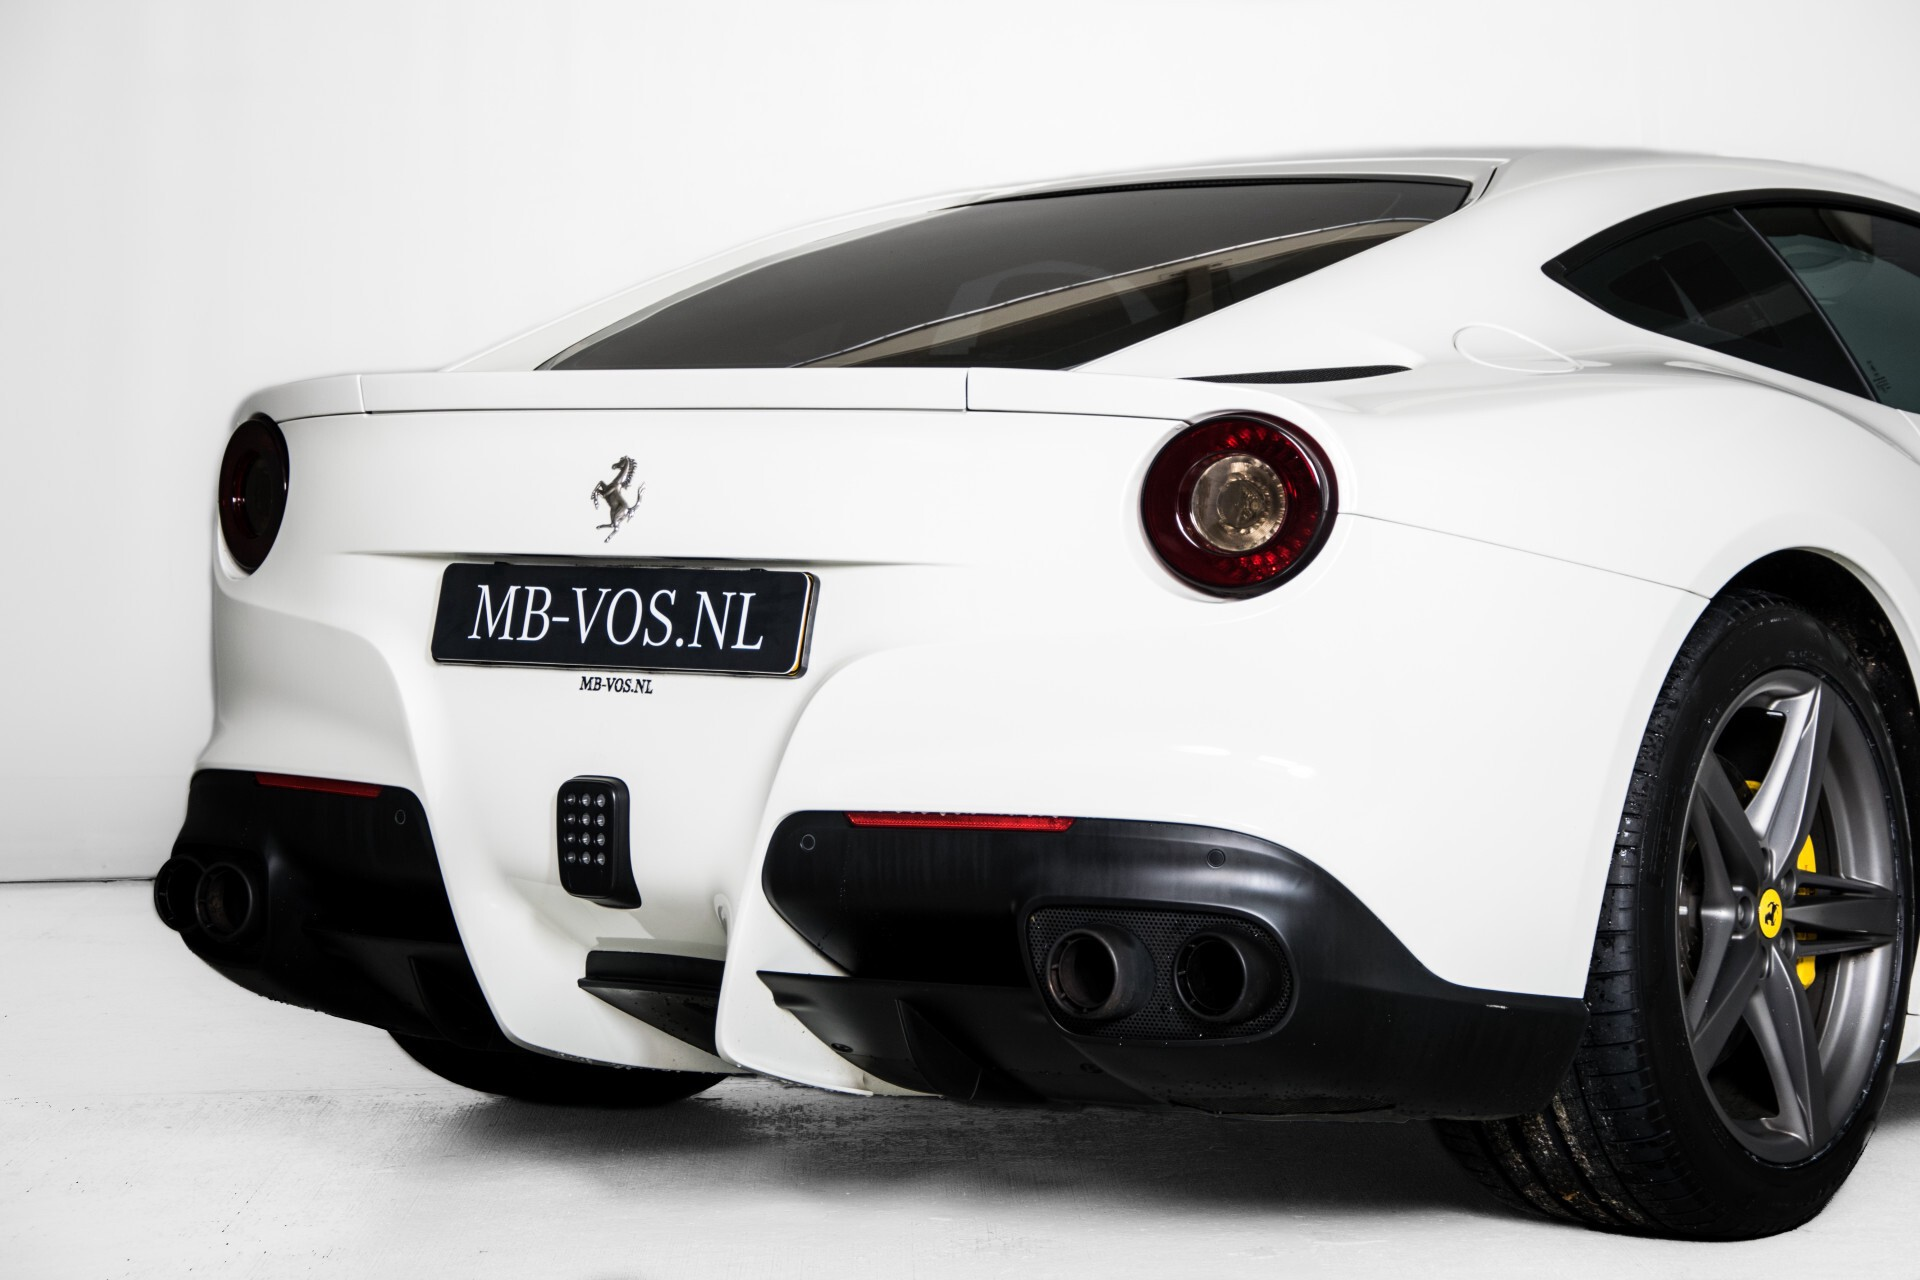 Ferrari F12 6.3 Berlinetta Capristo/Carbonseats/Led/Passenger Display Aut7 Foto 34